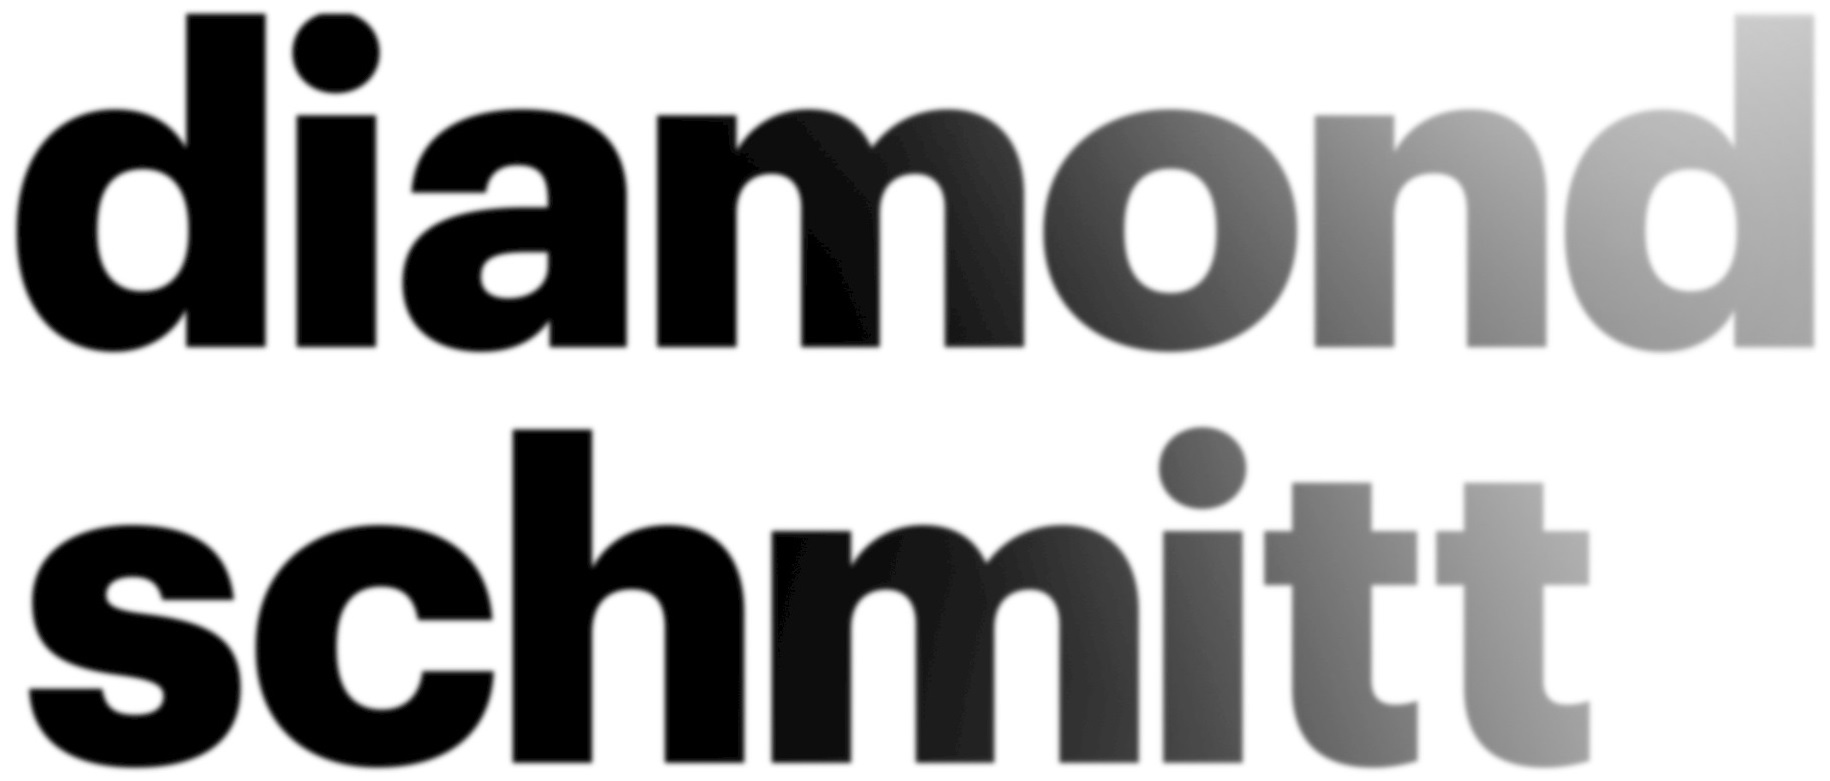 Diamond Schmitt